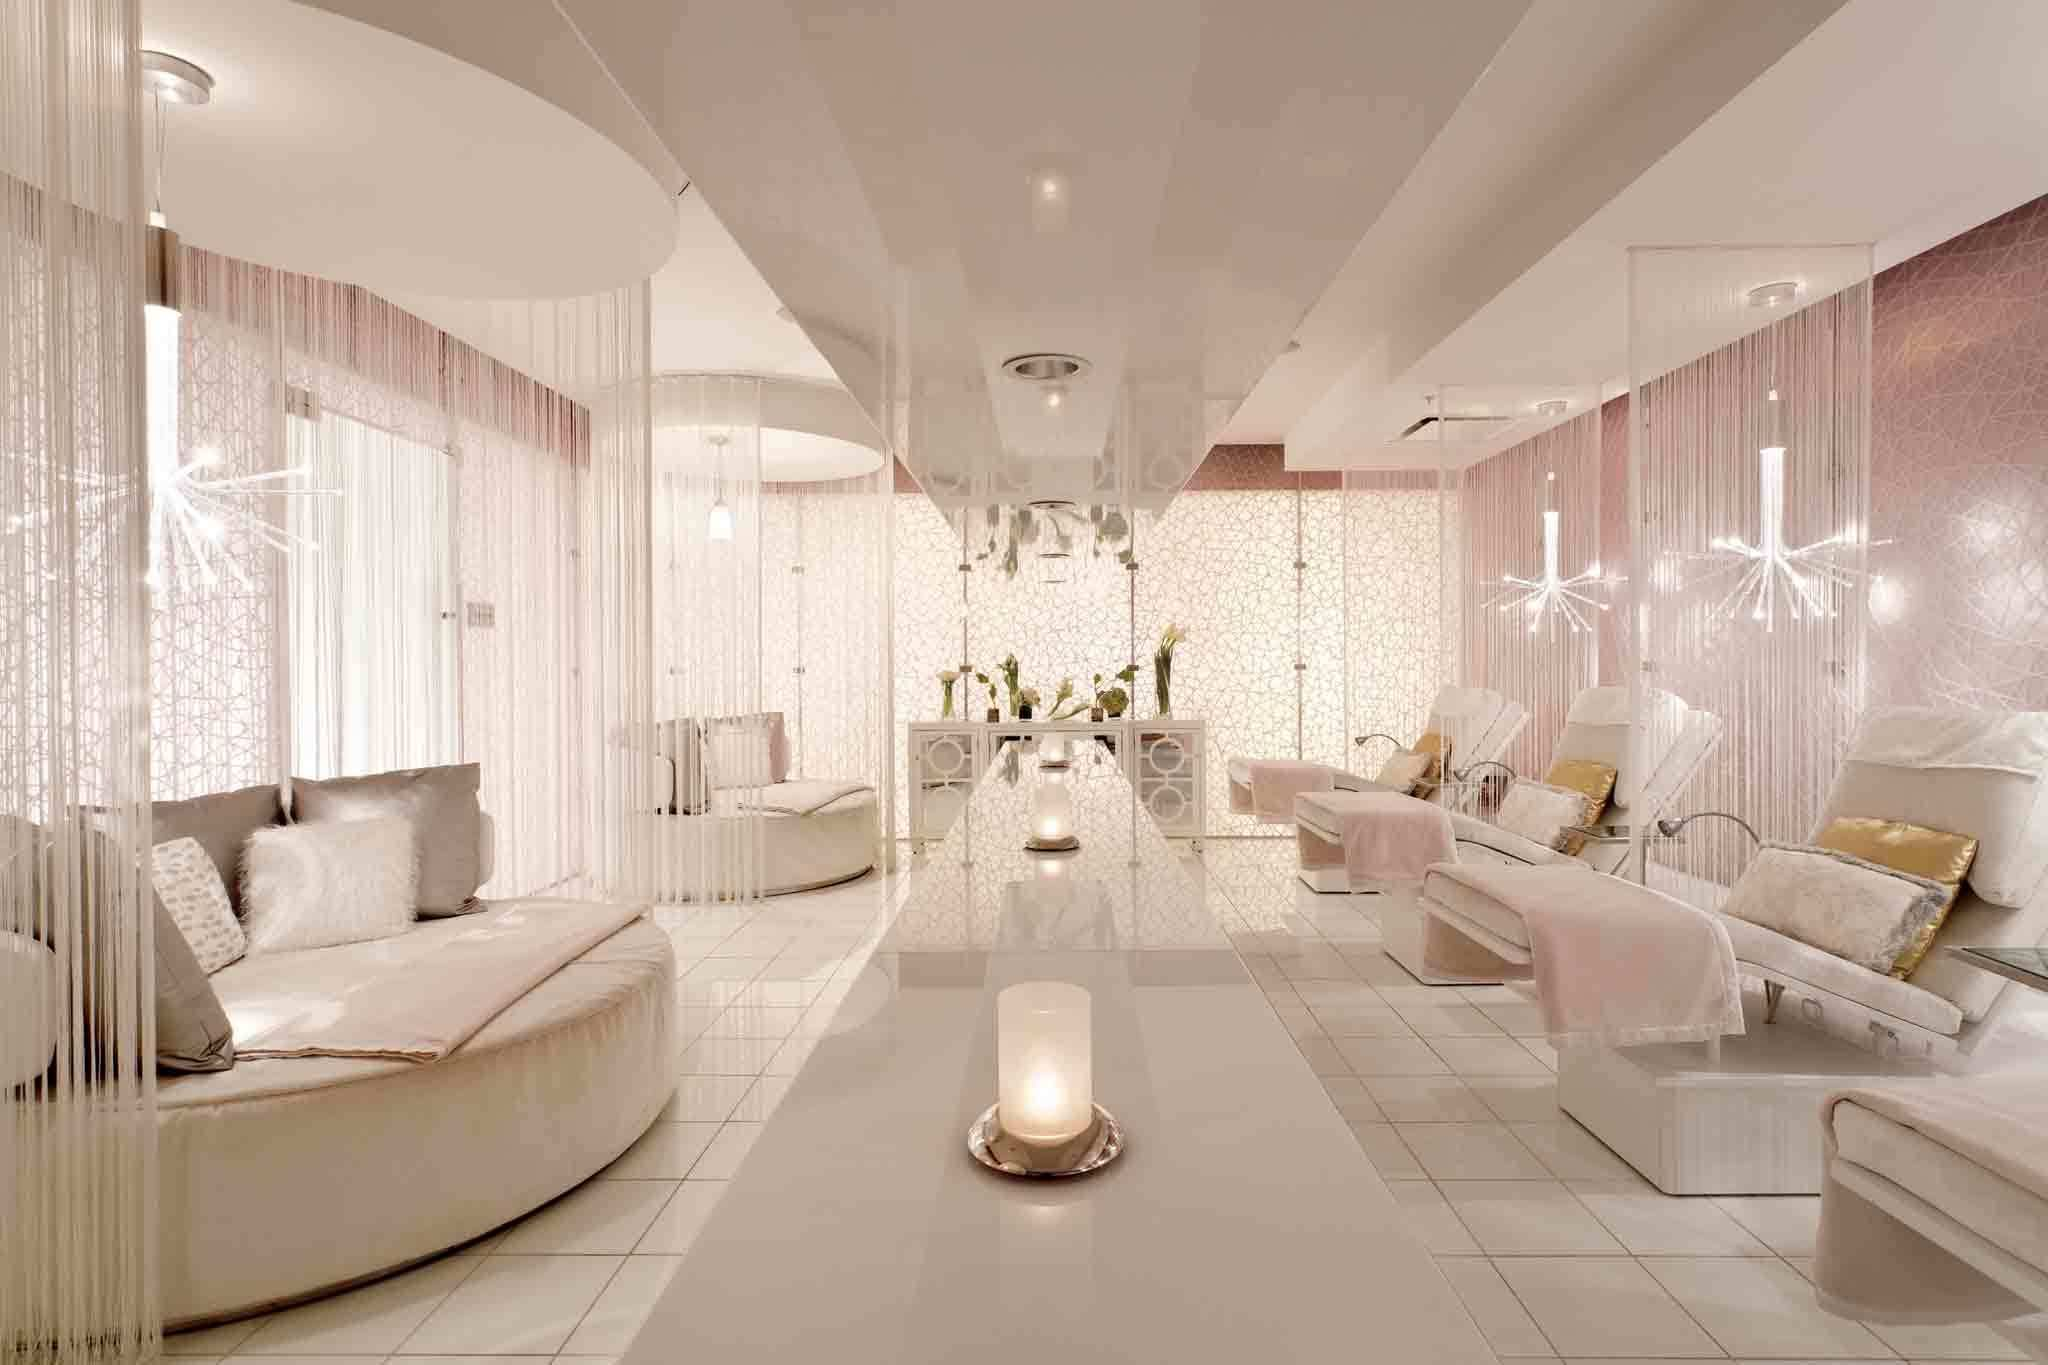 Find the best spa in Los Angeles for you